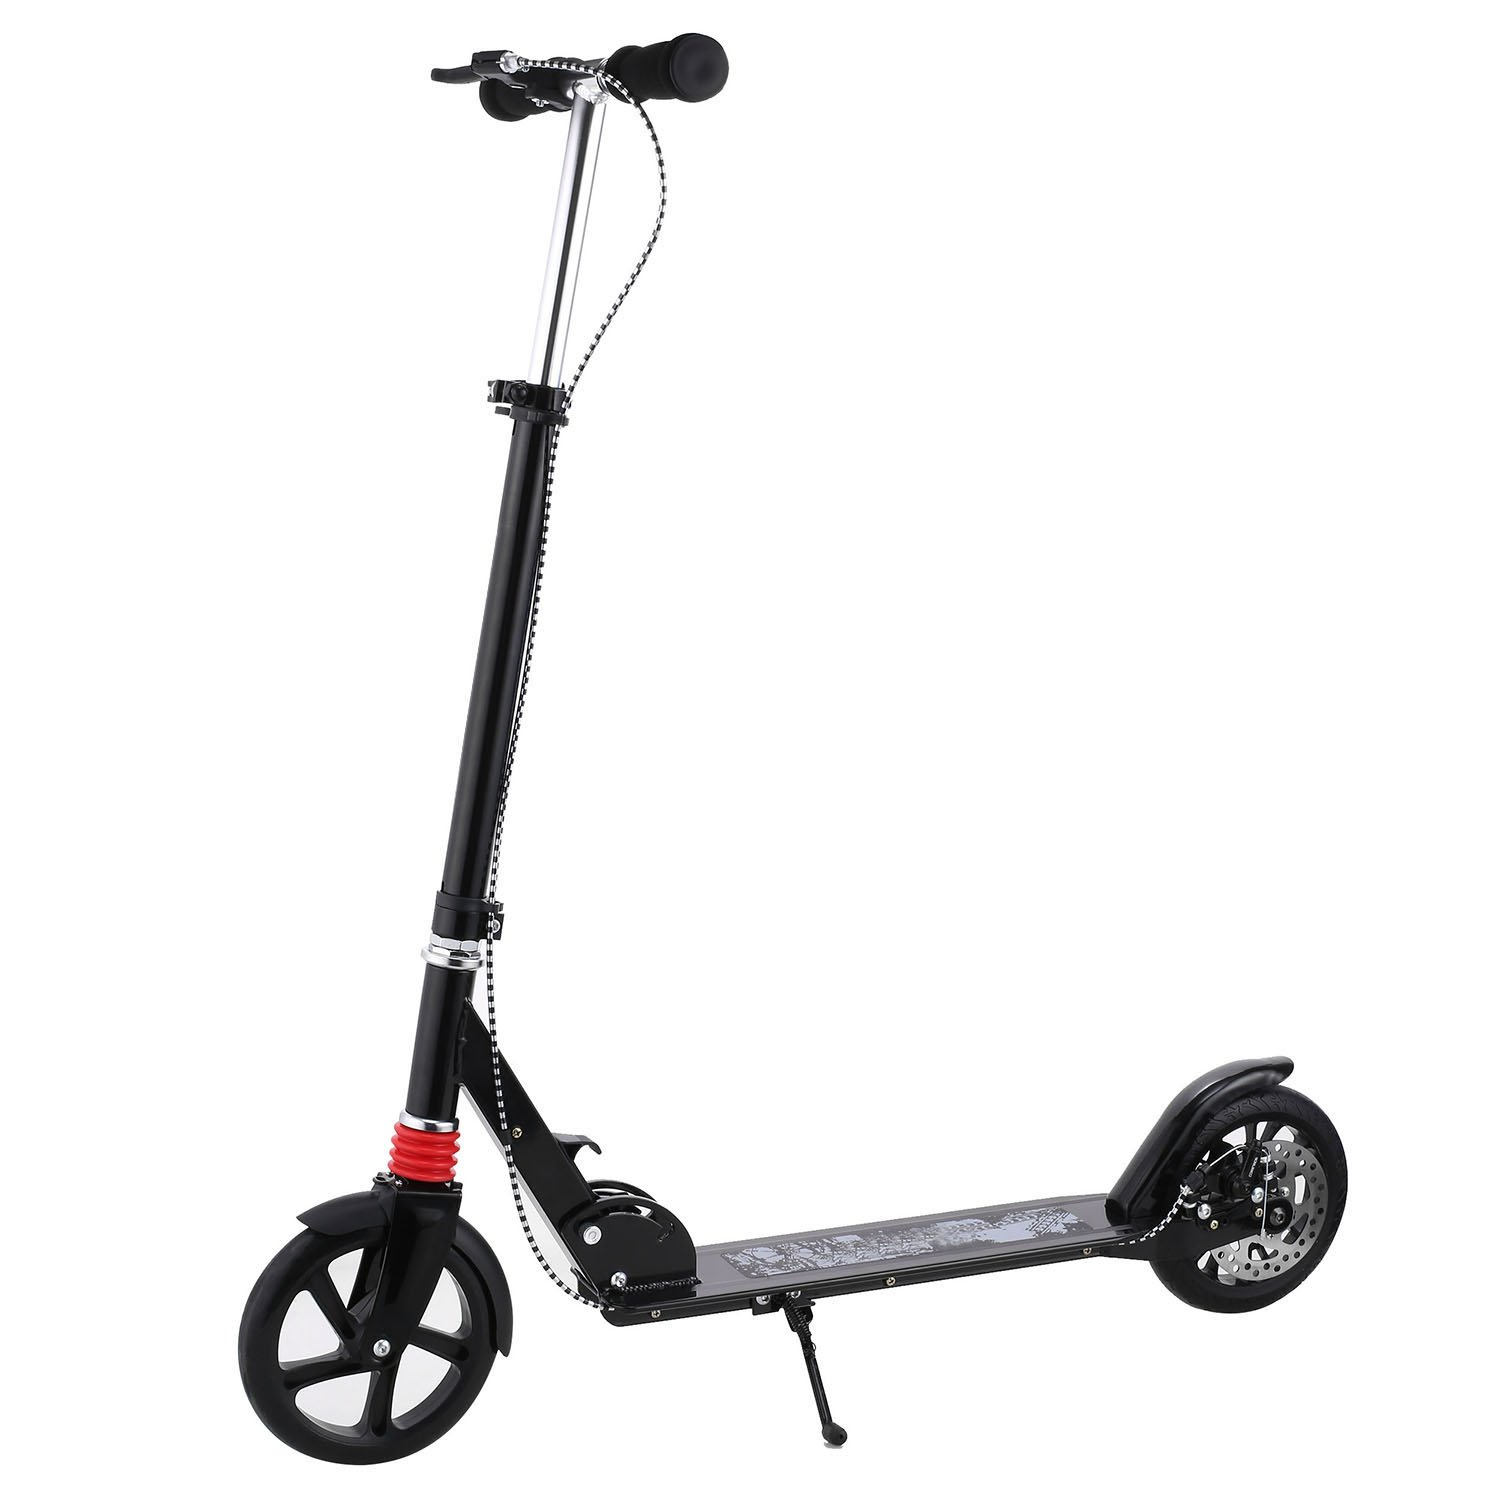 Kemanner Kick Scooter with Easy-Folding System,Adjustable Height,200 MM Large Wheels, Durable Alloy Adult Scooter for Men and Women